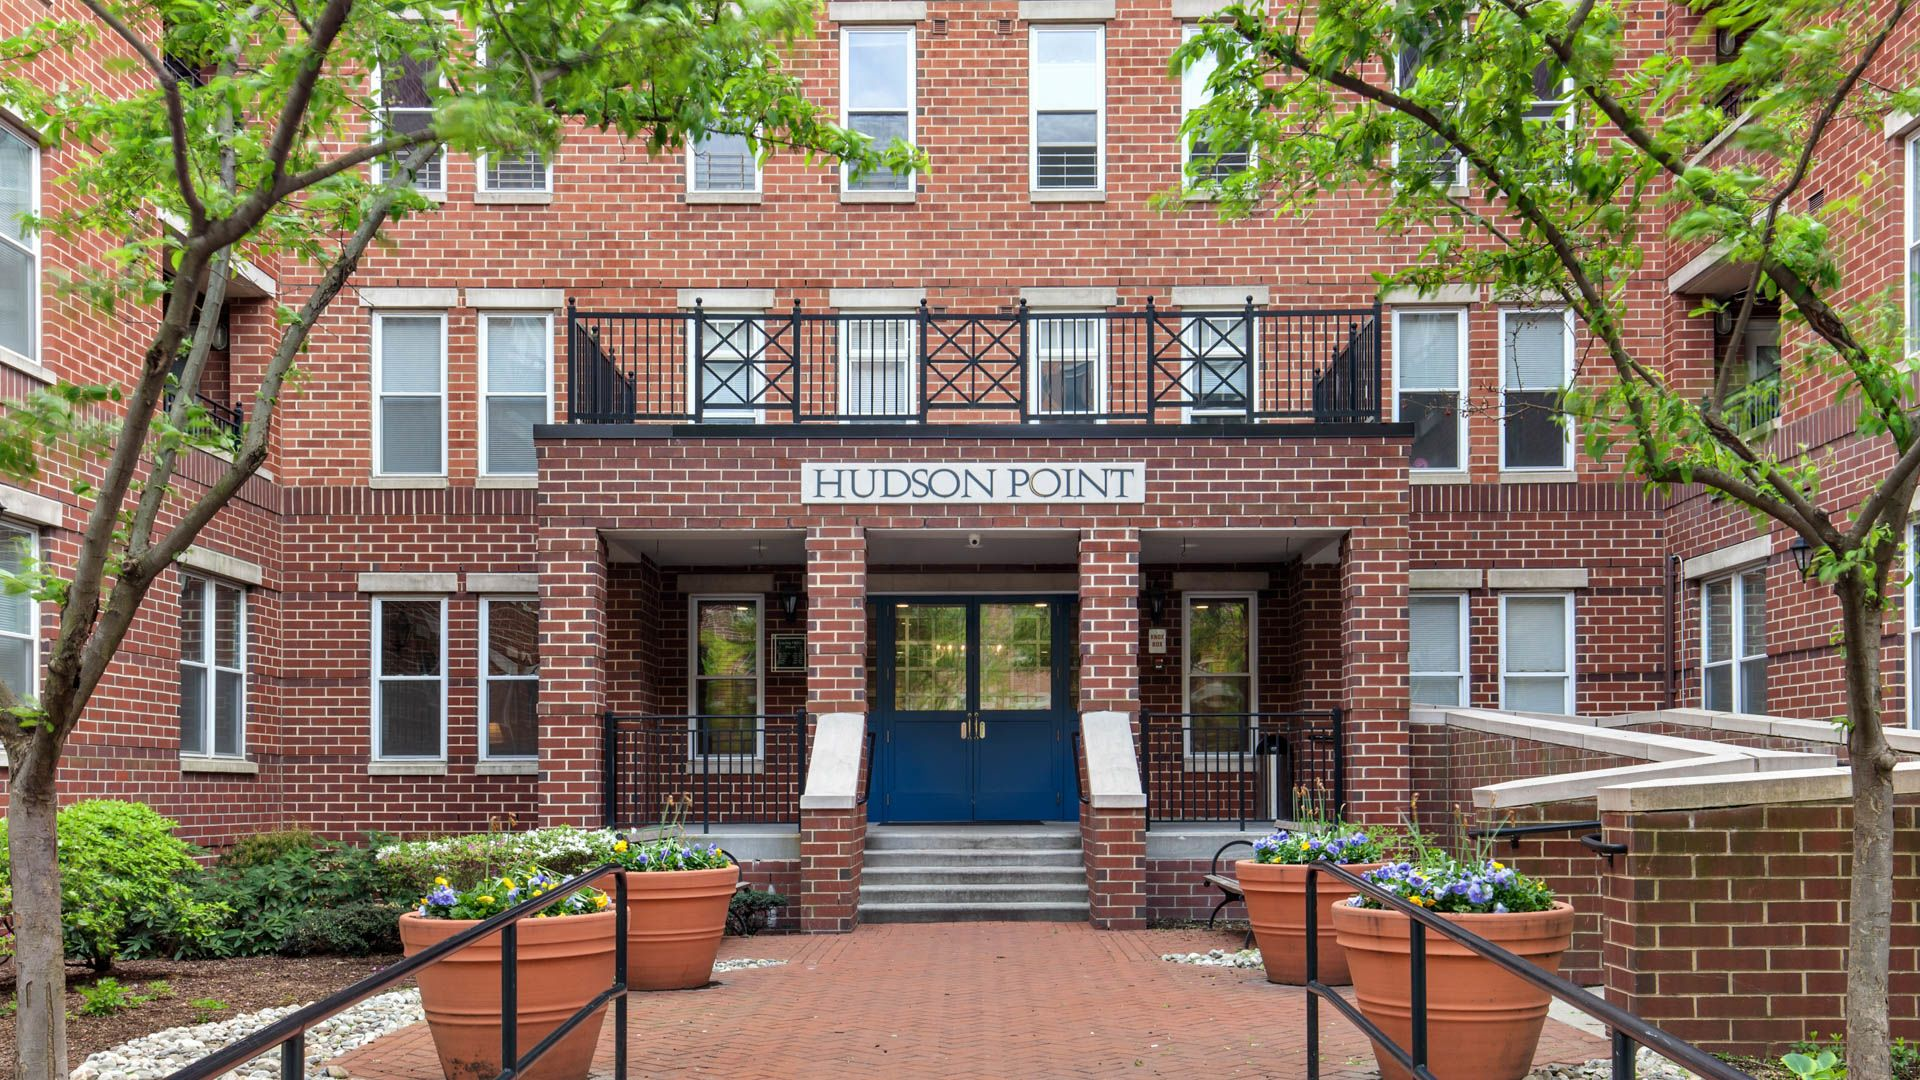 Hudson Point Apartments - Exterior